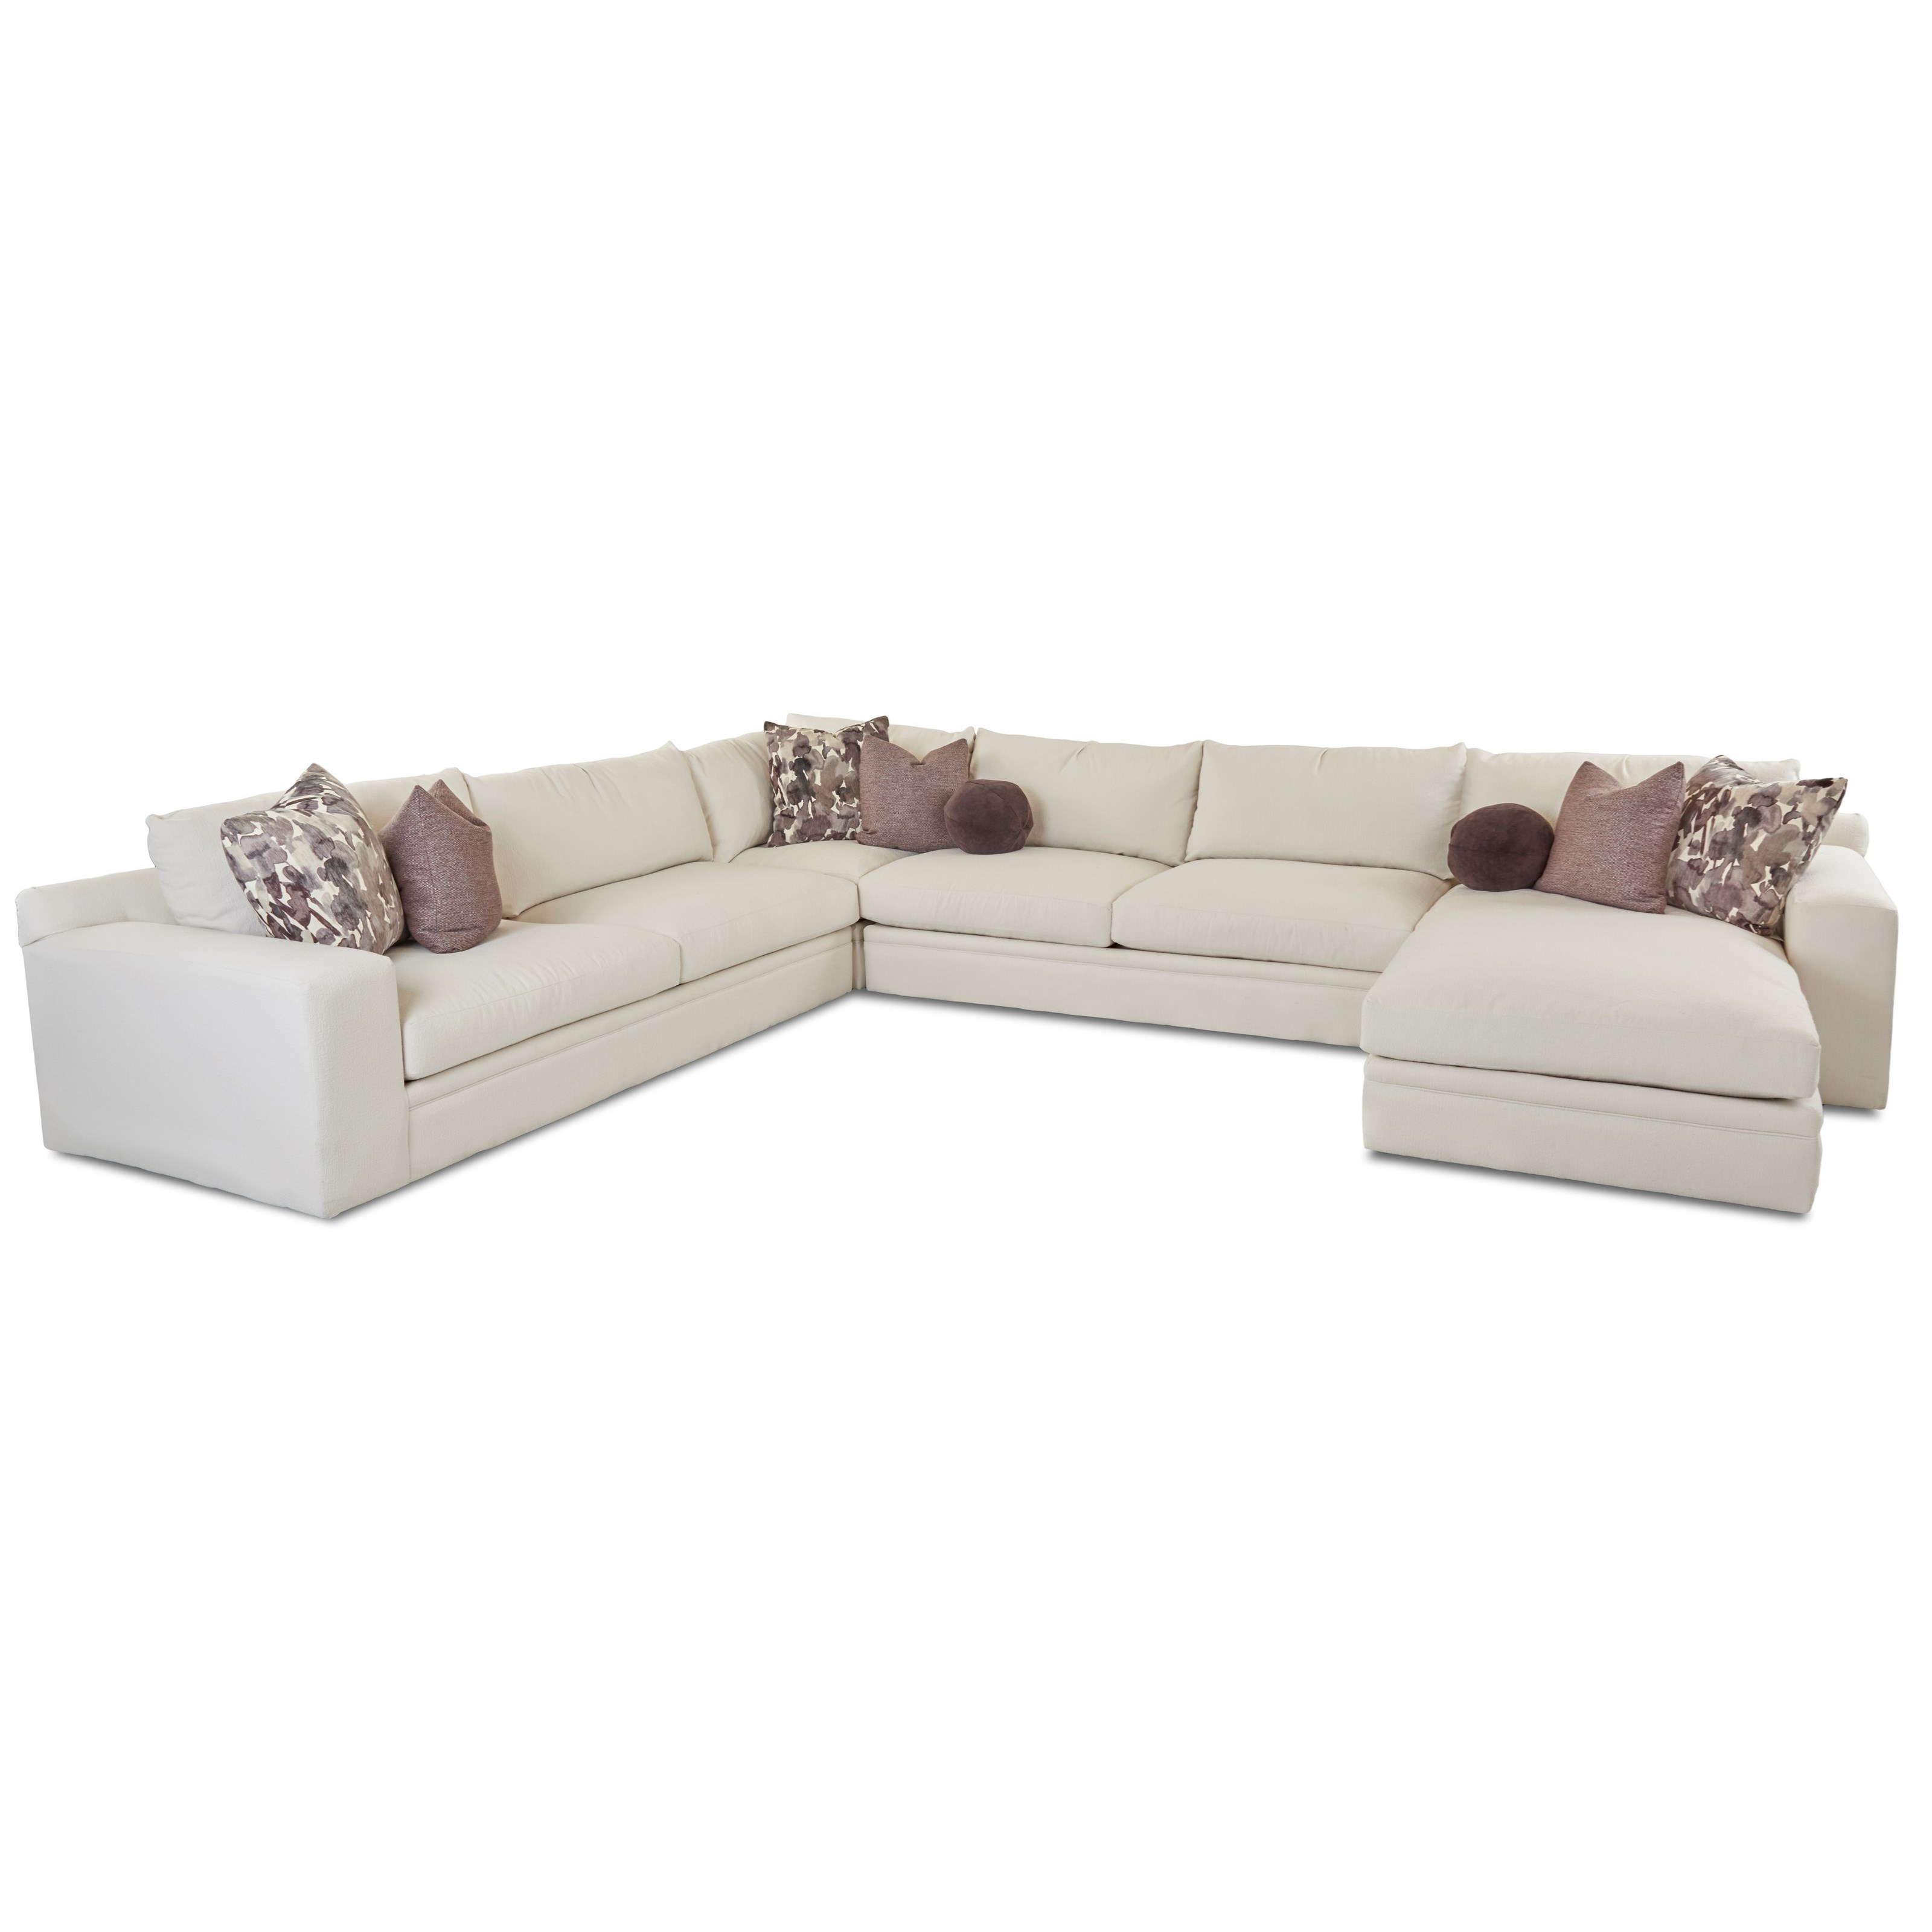 Casa Mesa 4 Pc Sectional Sofa w/ RAF Chaise by Klaussner at Northeast Factory Direct